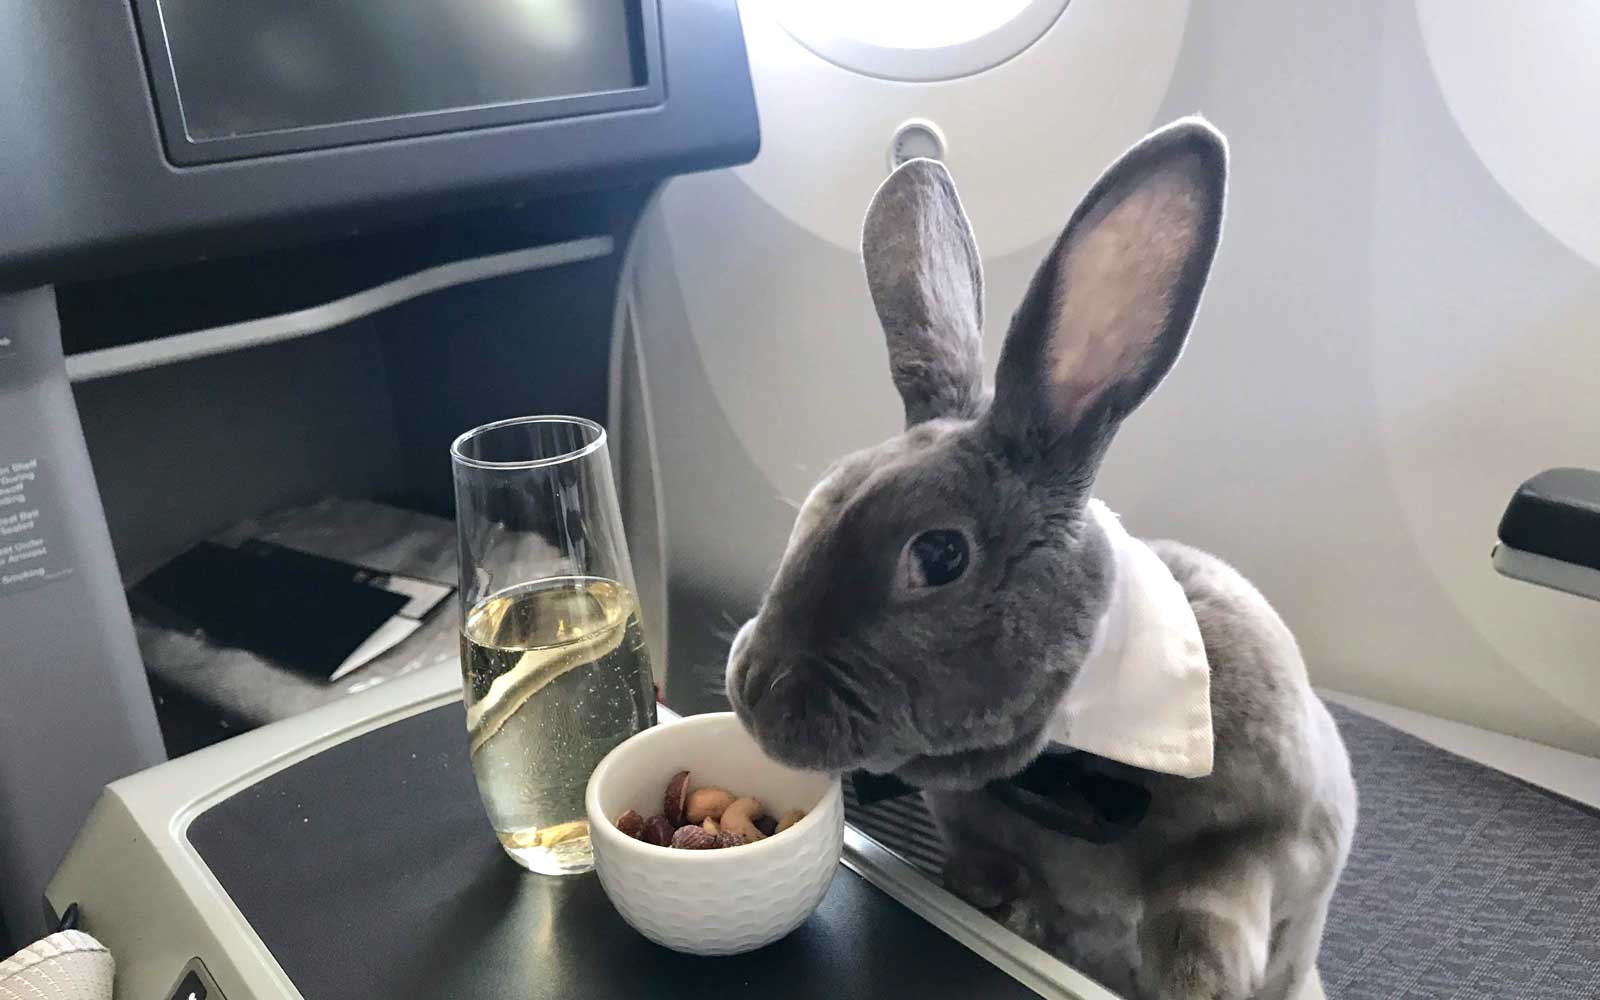 Coco, the business class bunny, enjoys a snack of nuts and champagne on the plane.